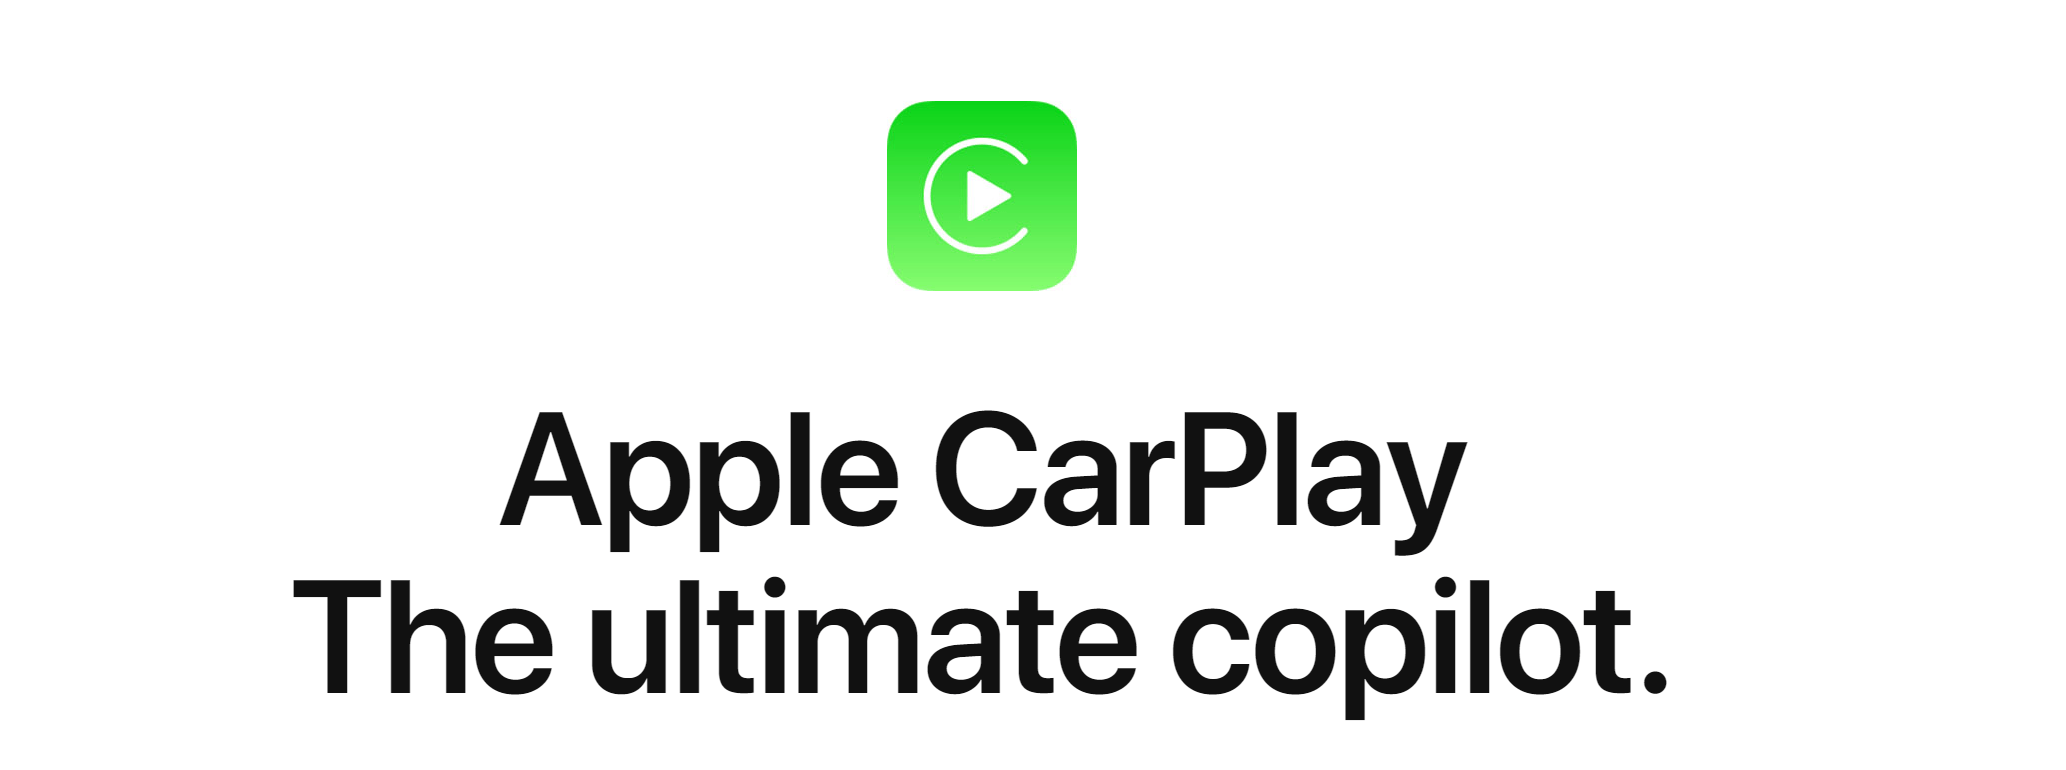 Apple CarPlay at Ken Shaw Toyota in Toronto, Ontario